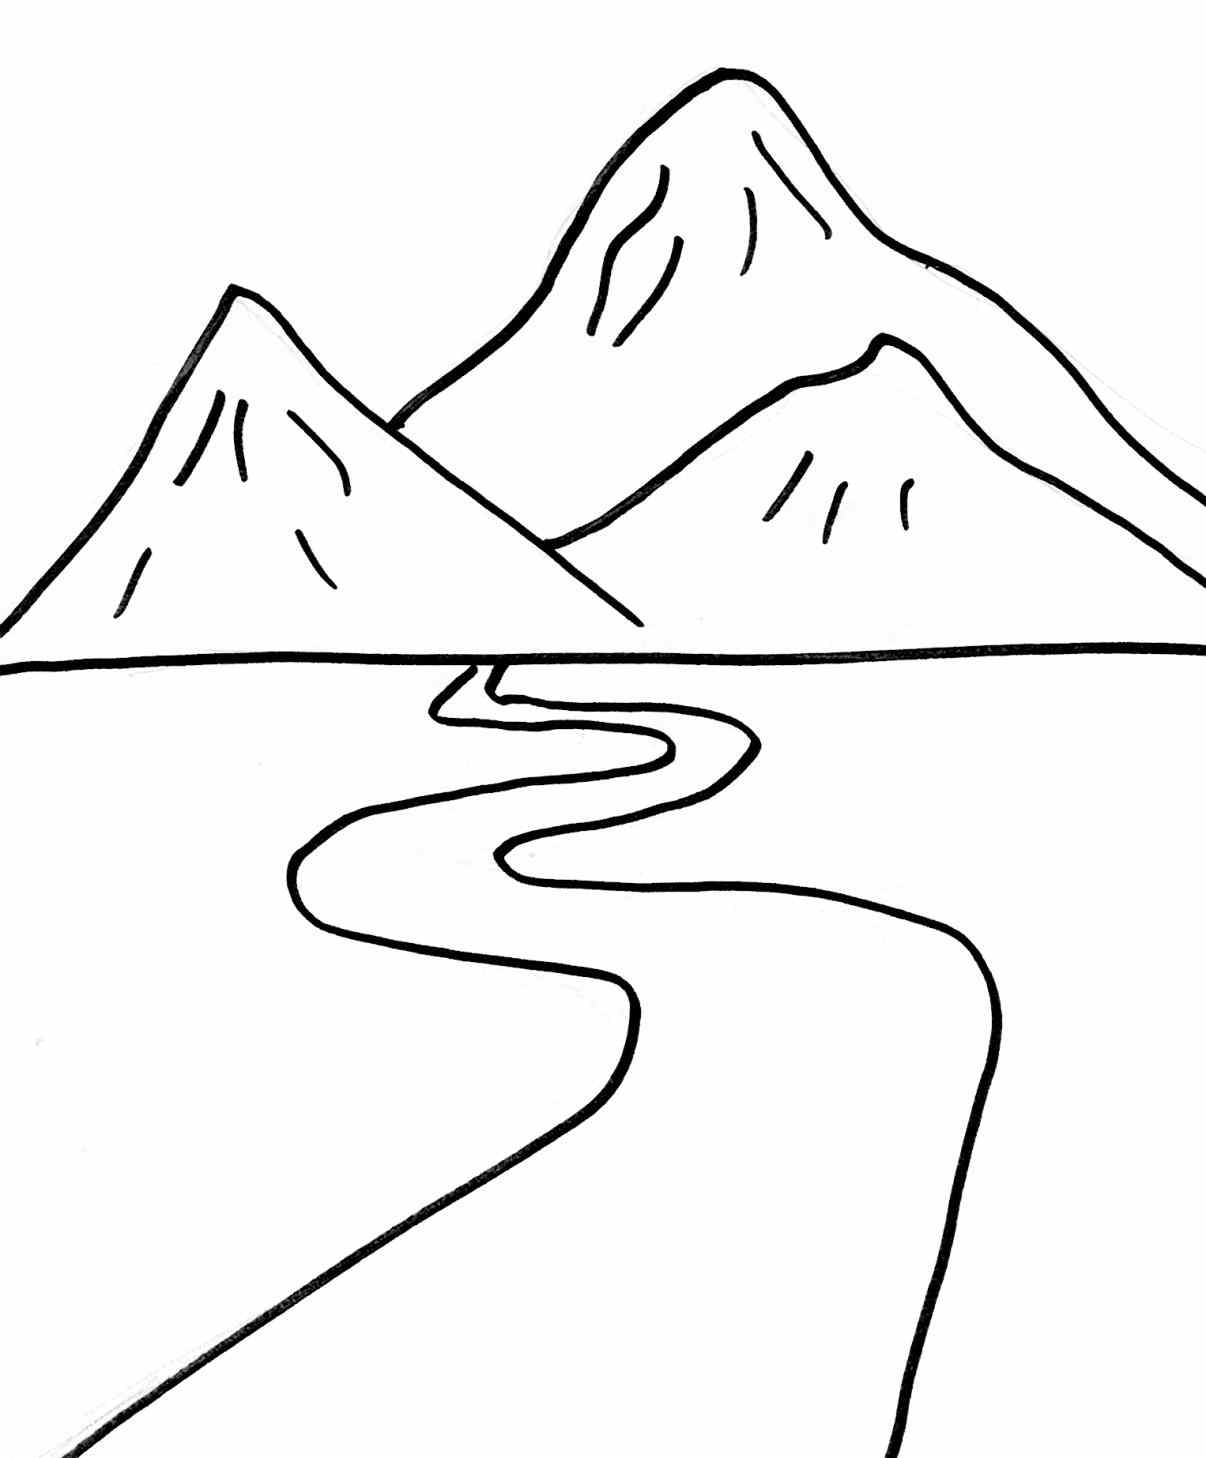 1206x1458 Ideas Free Simple Landscape Coloring Pages Coloring Pages